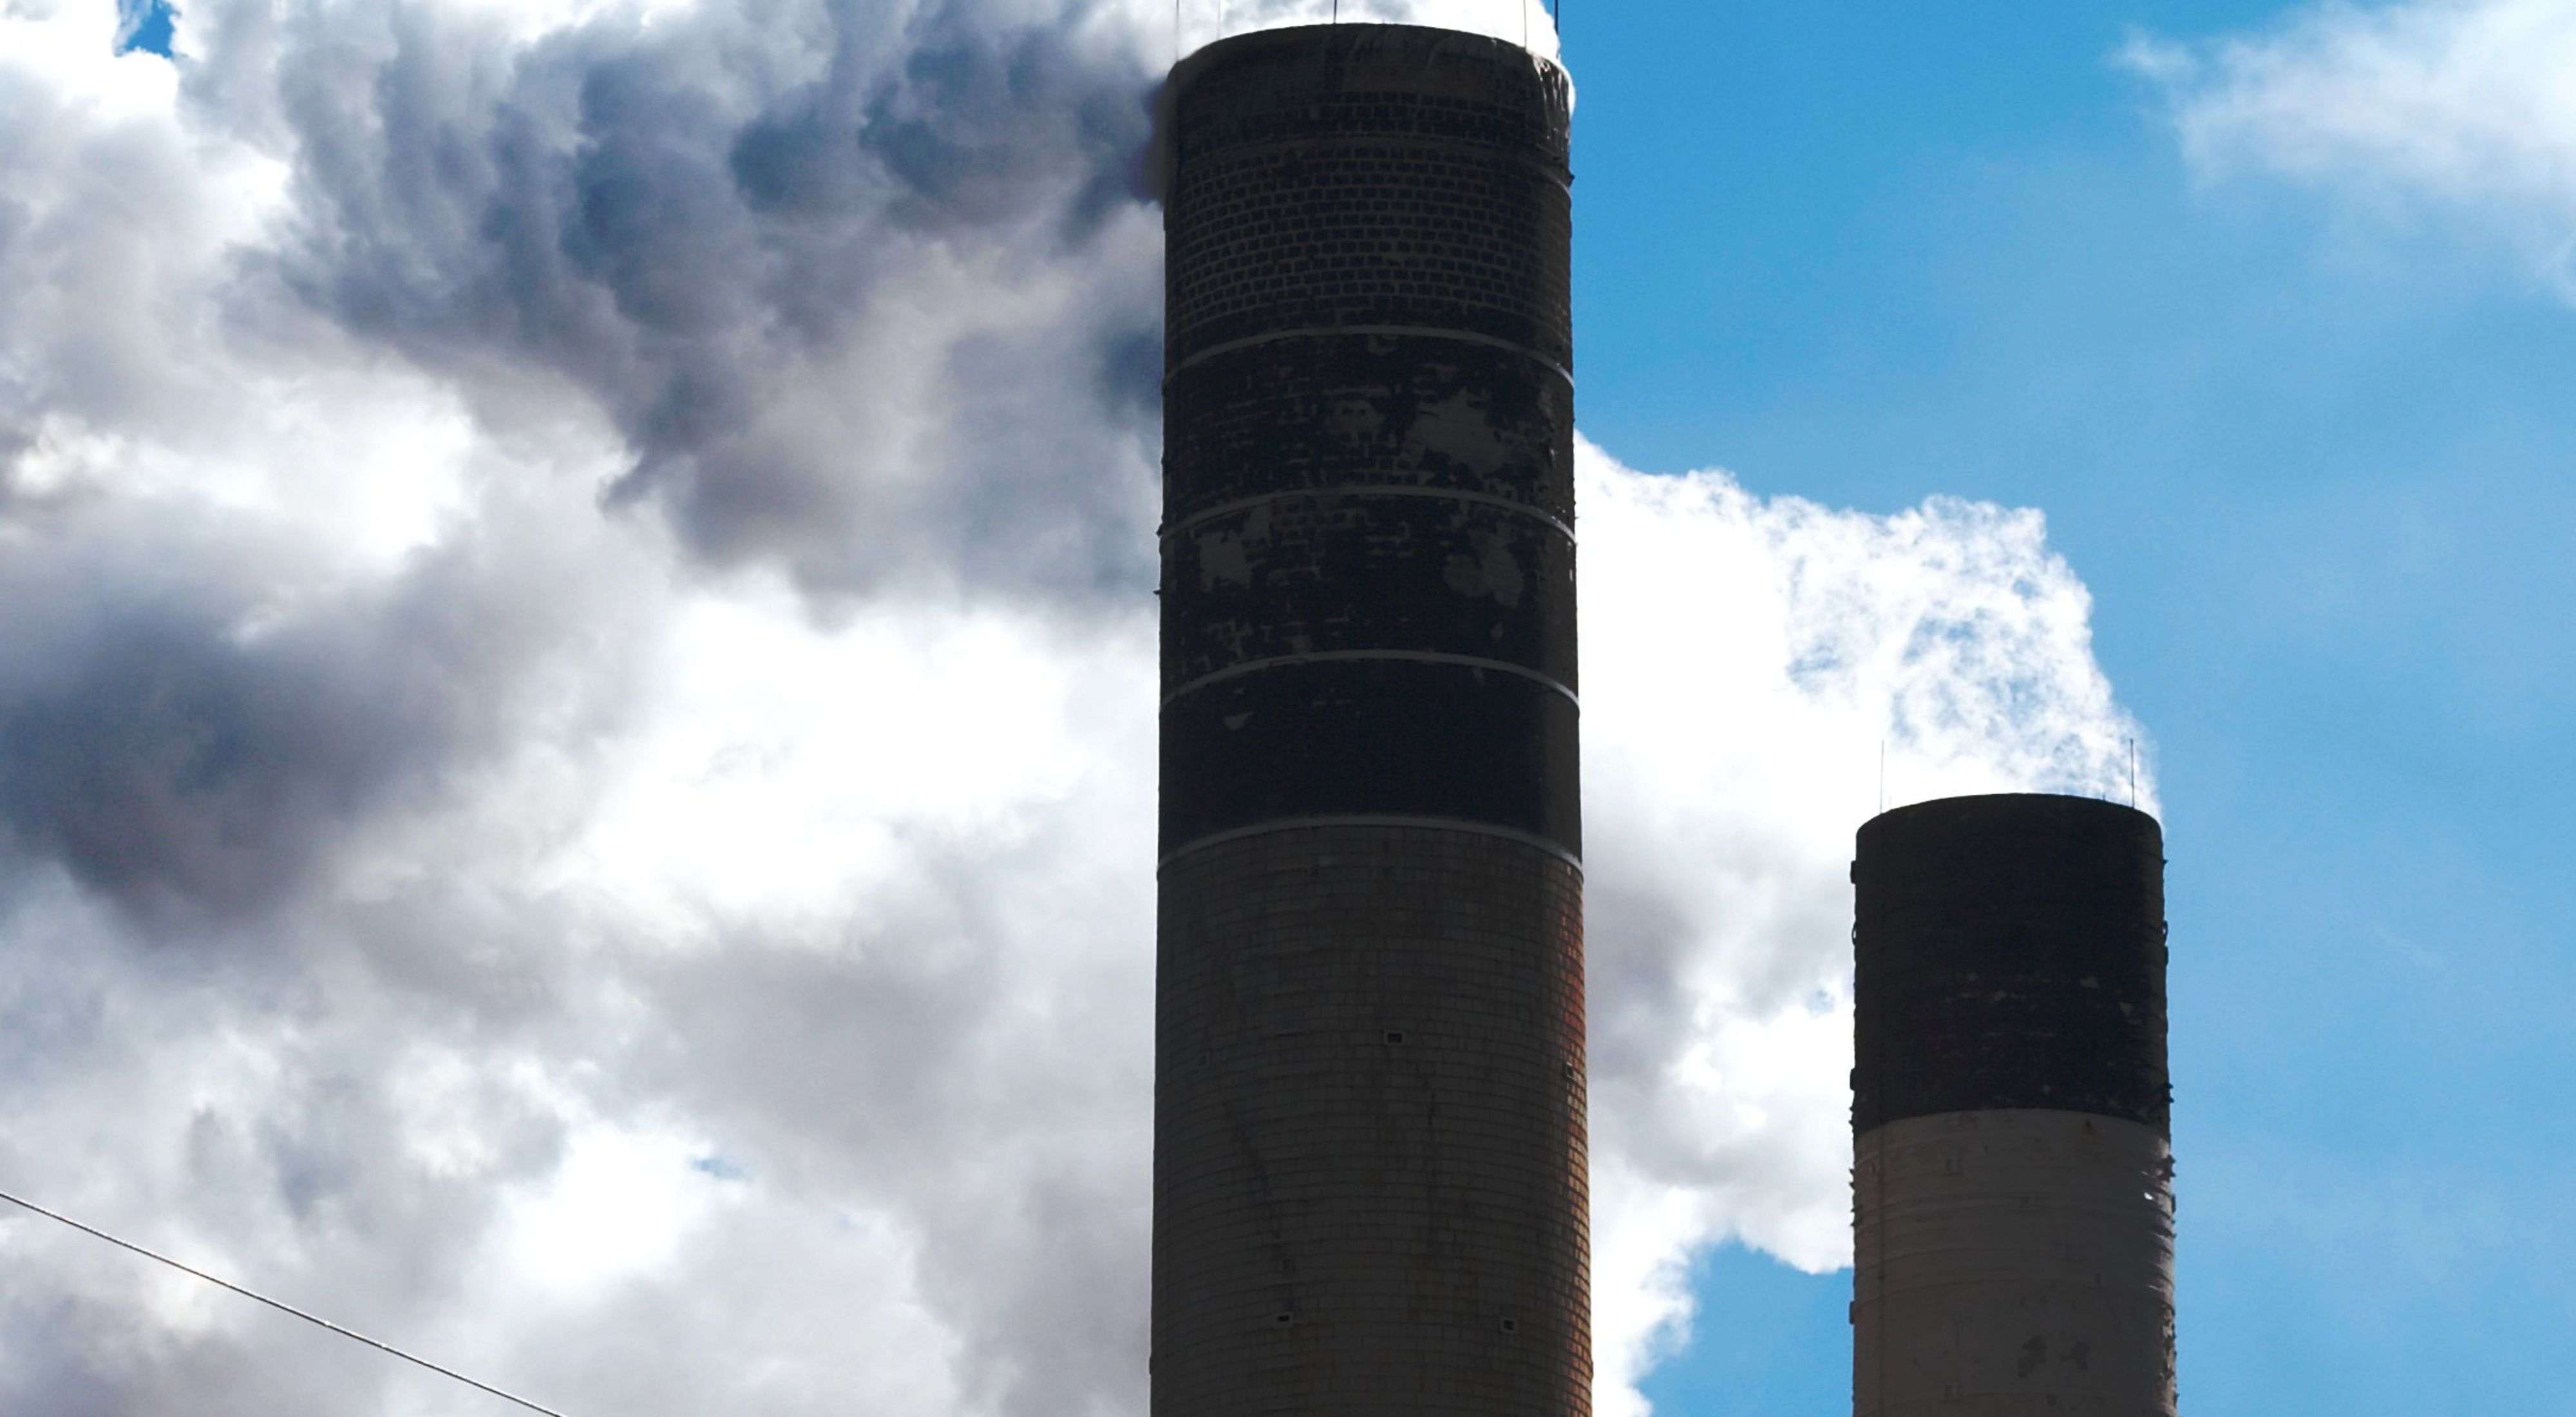 Photo of air pollution coming out of a smokestack.